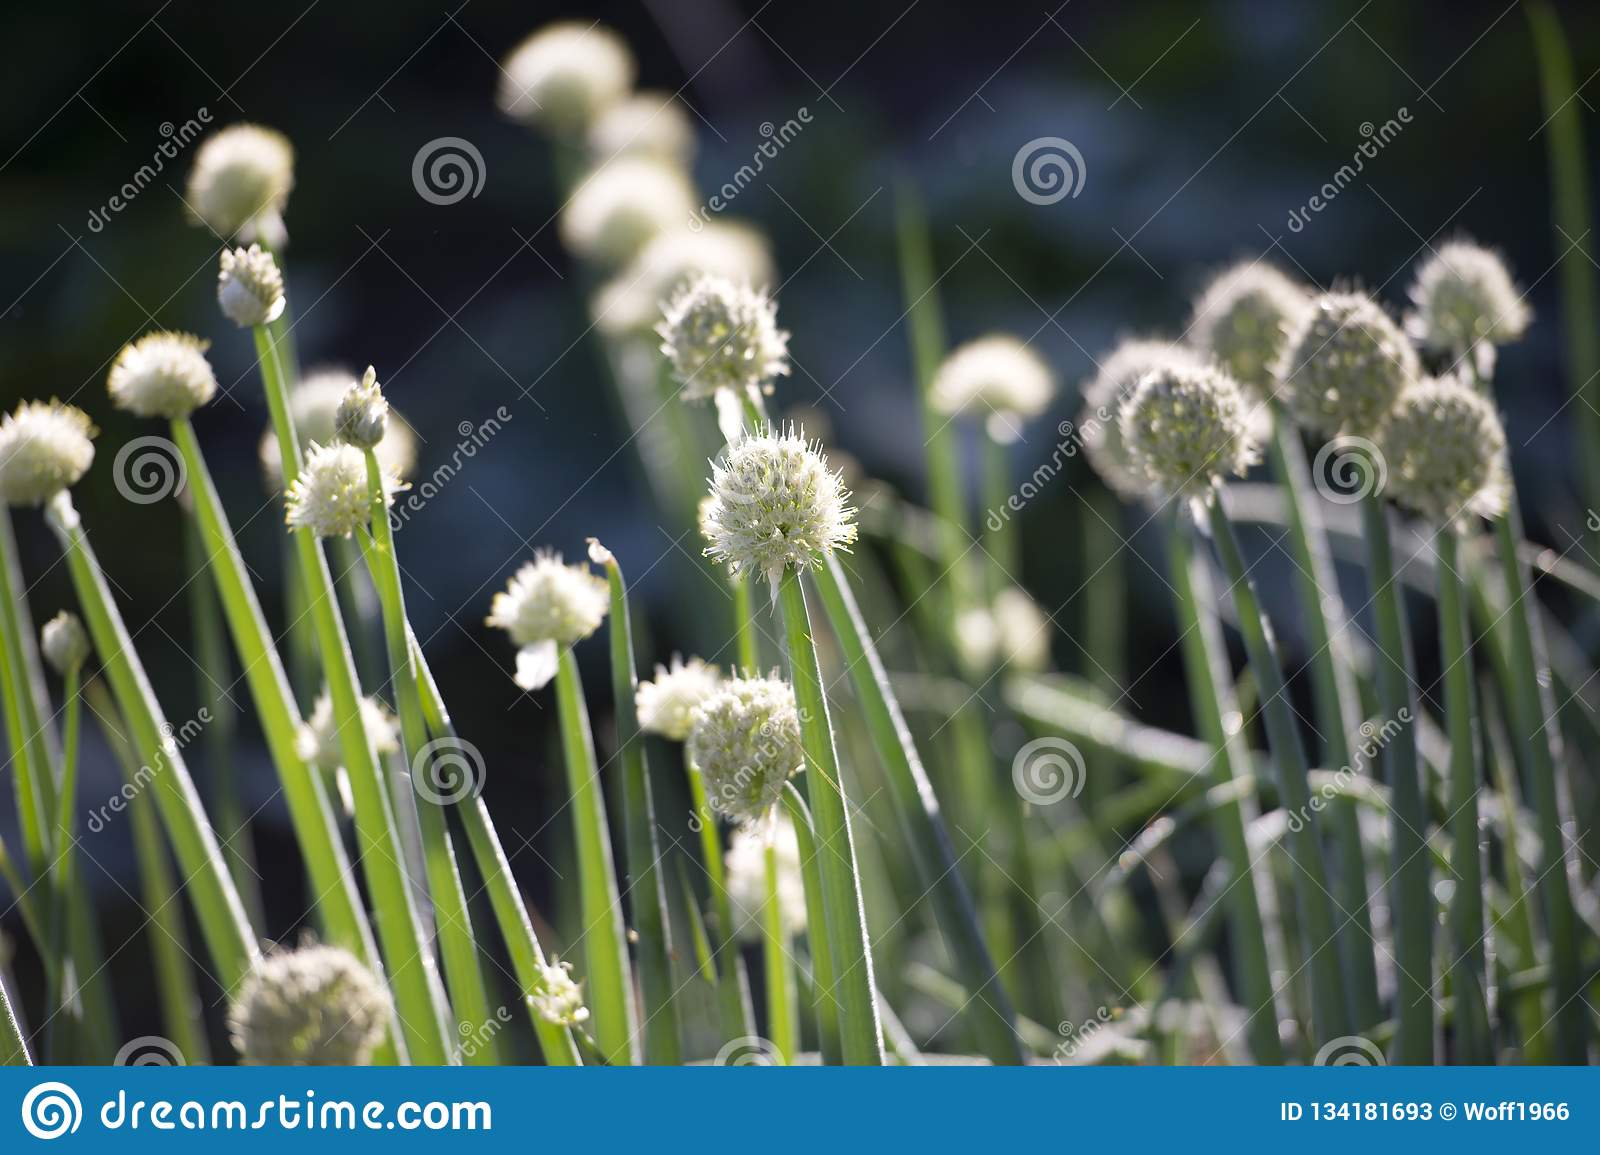 Seeds of green onions